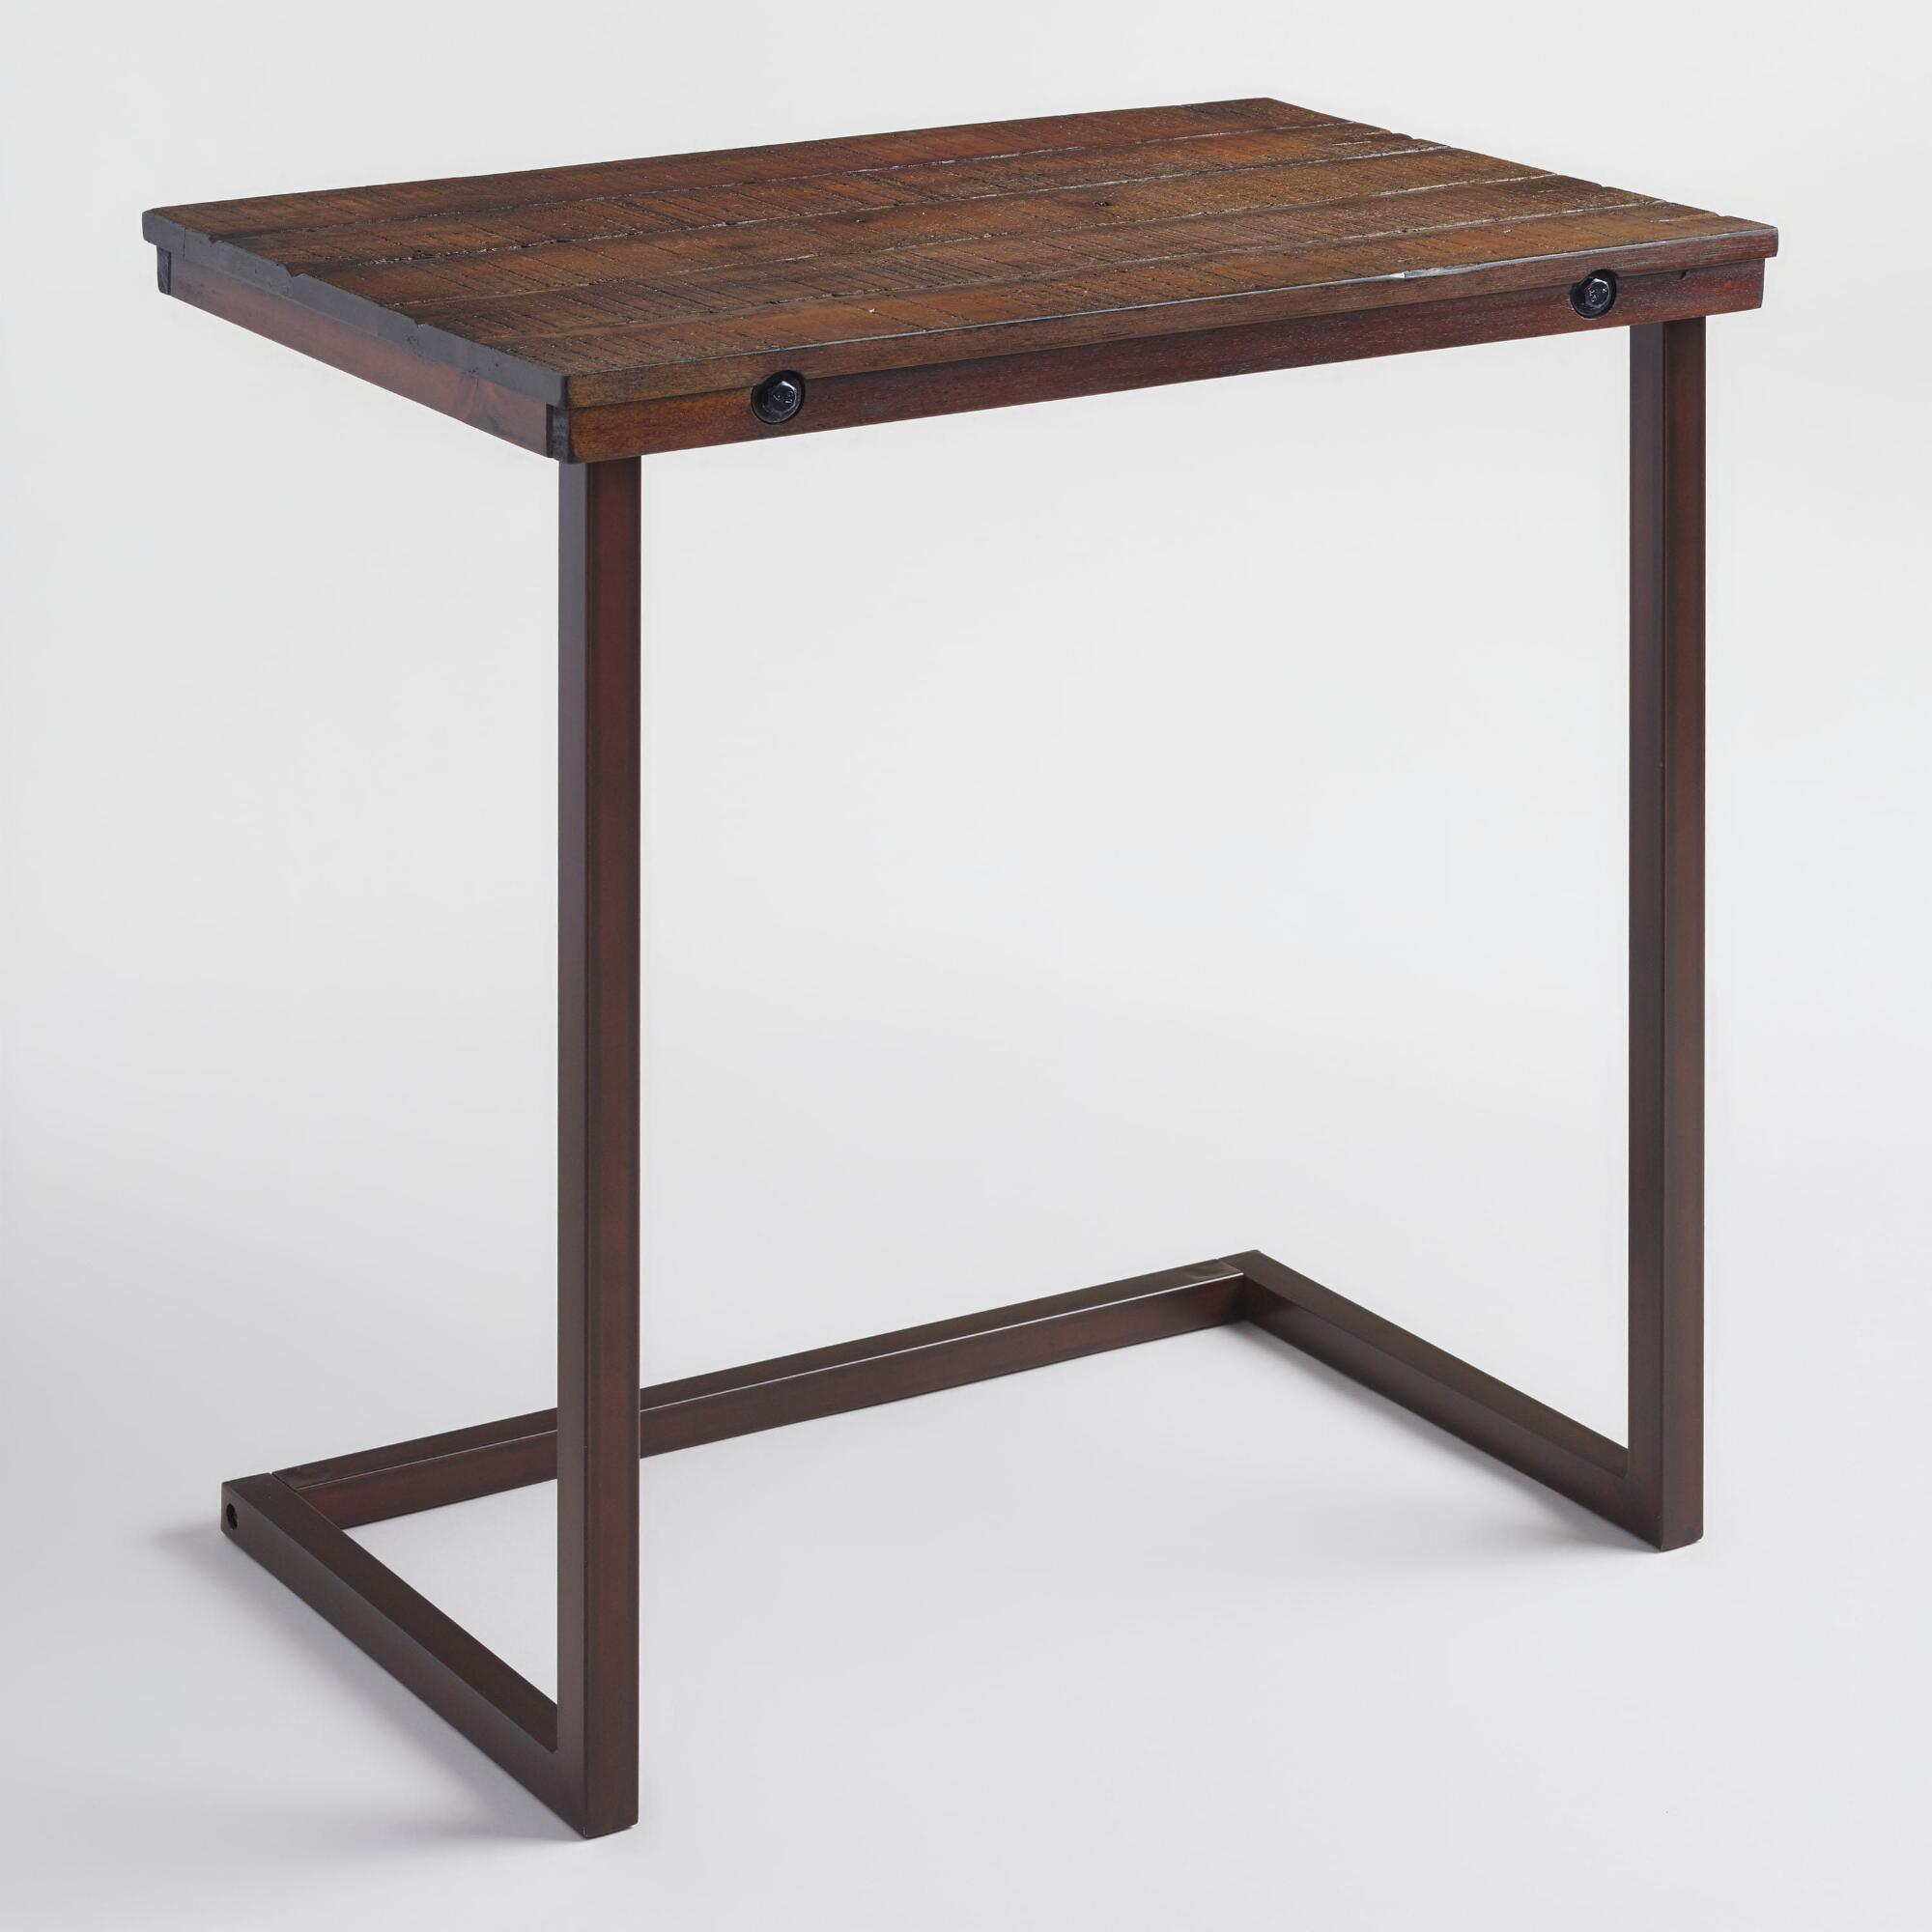 small space coffee side tables world market iipsrv fcgi rectangular accent table oversized wood and metal laptop handcrafted end wooden trestle bunnings teak patio iron sets